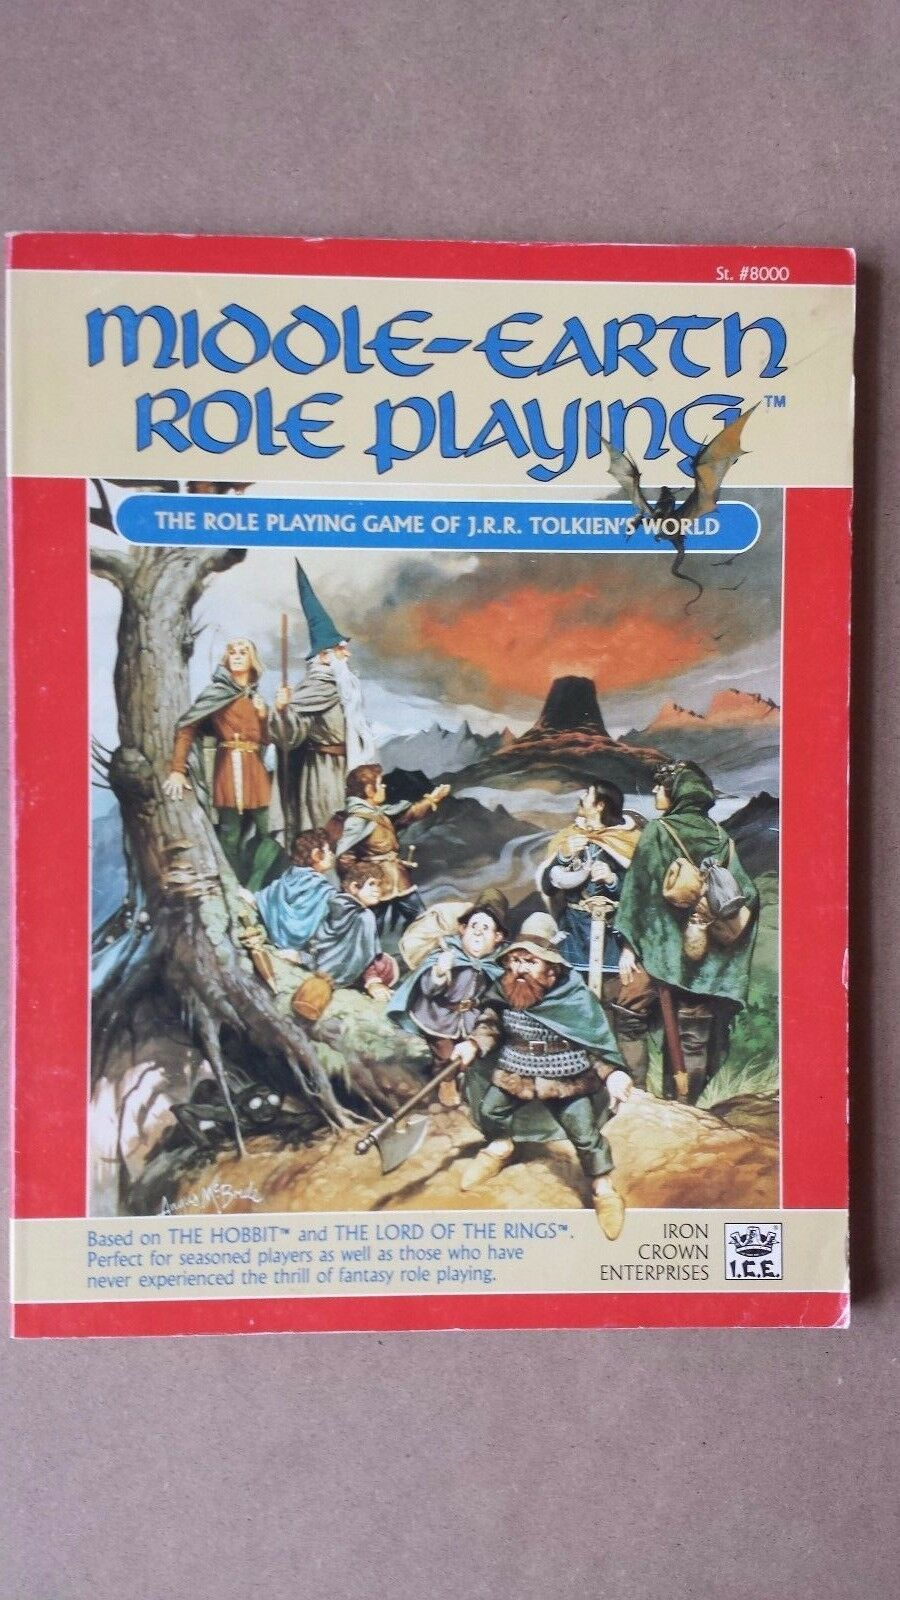 UNUSED MERP Middle Earth Middle-Earth Role Playing Rulebook Guidebook 8000 MINT